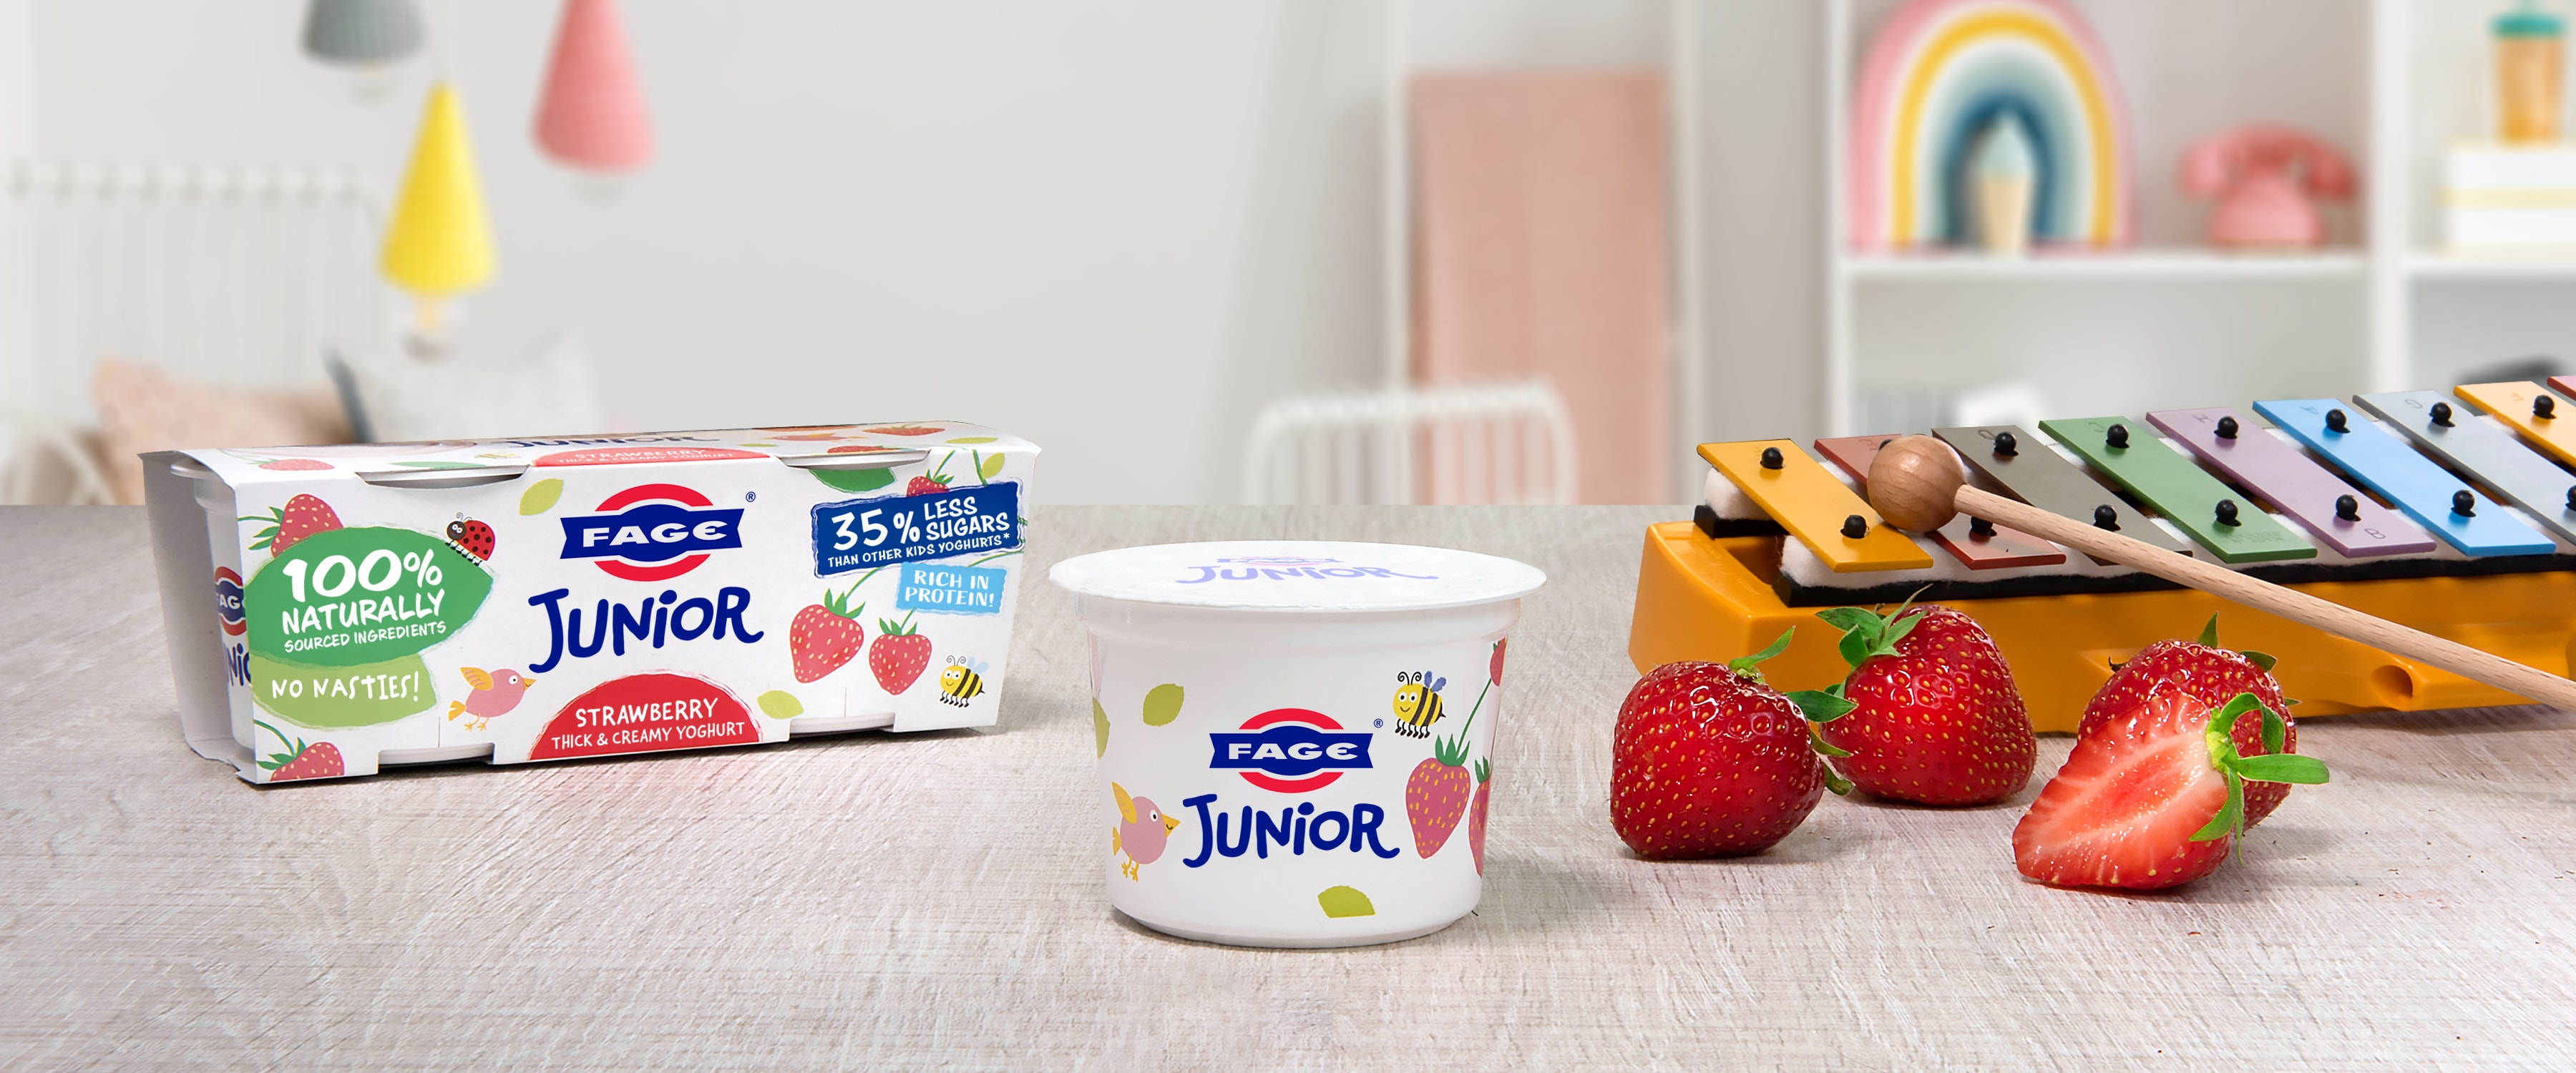 FAGE Junior Strawberry